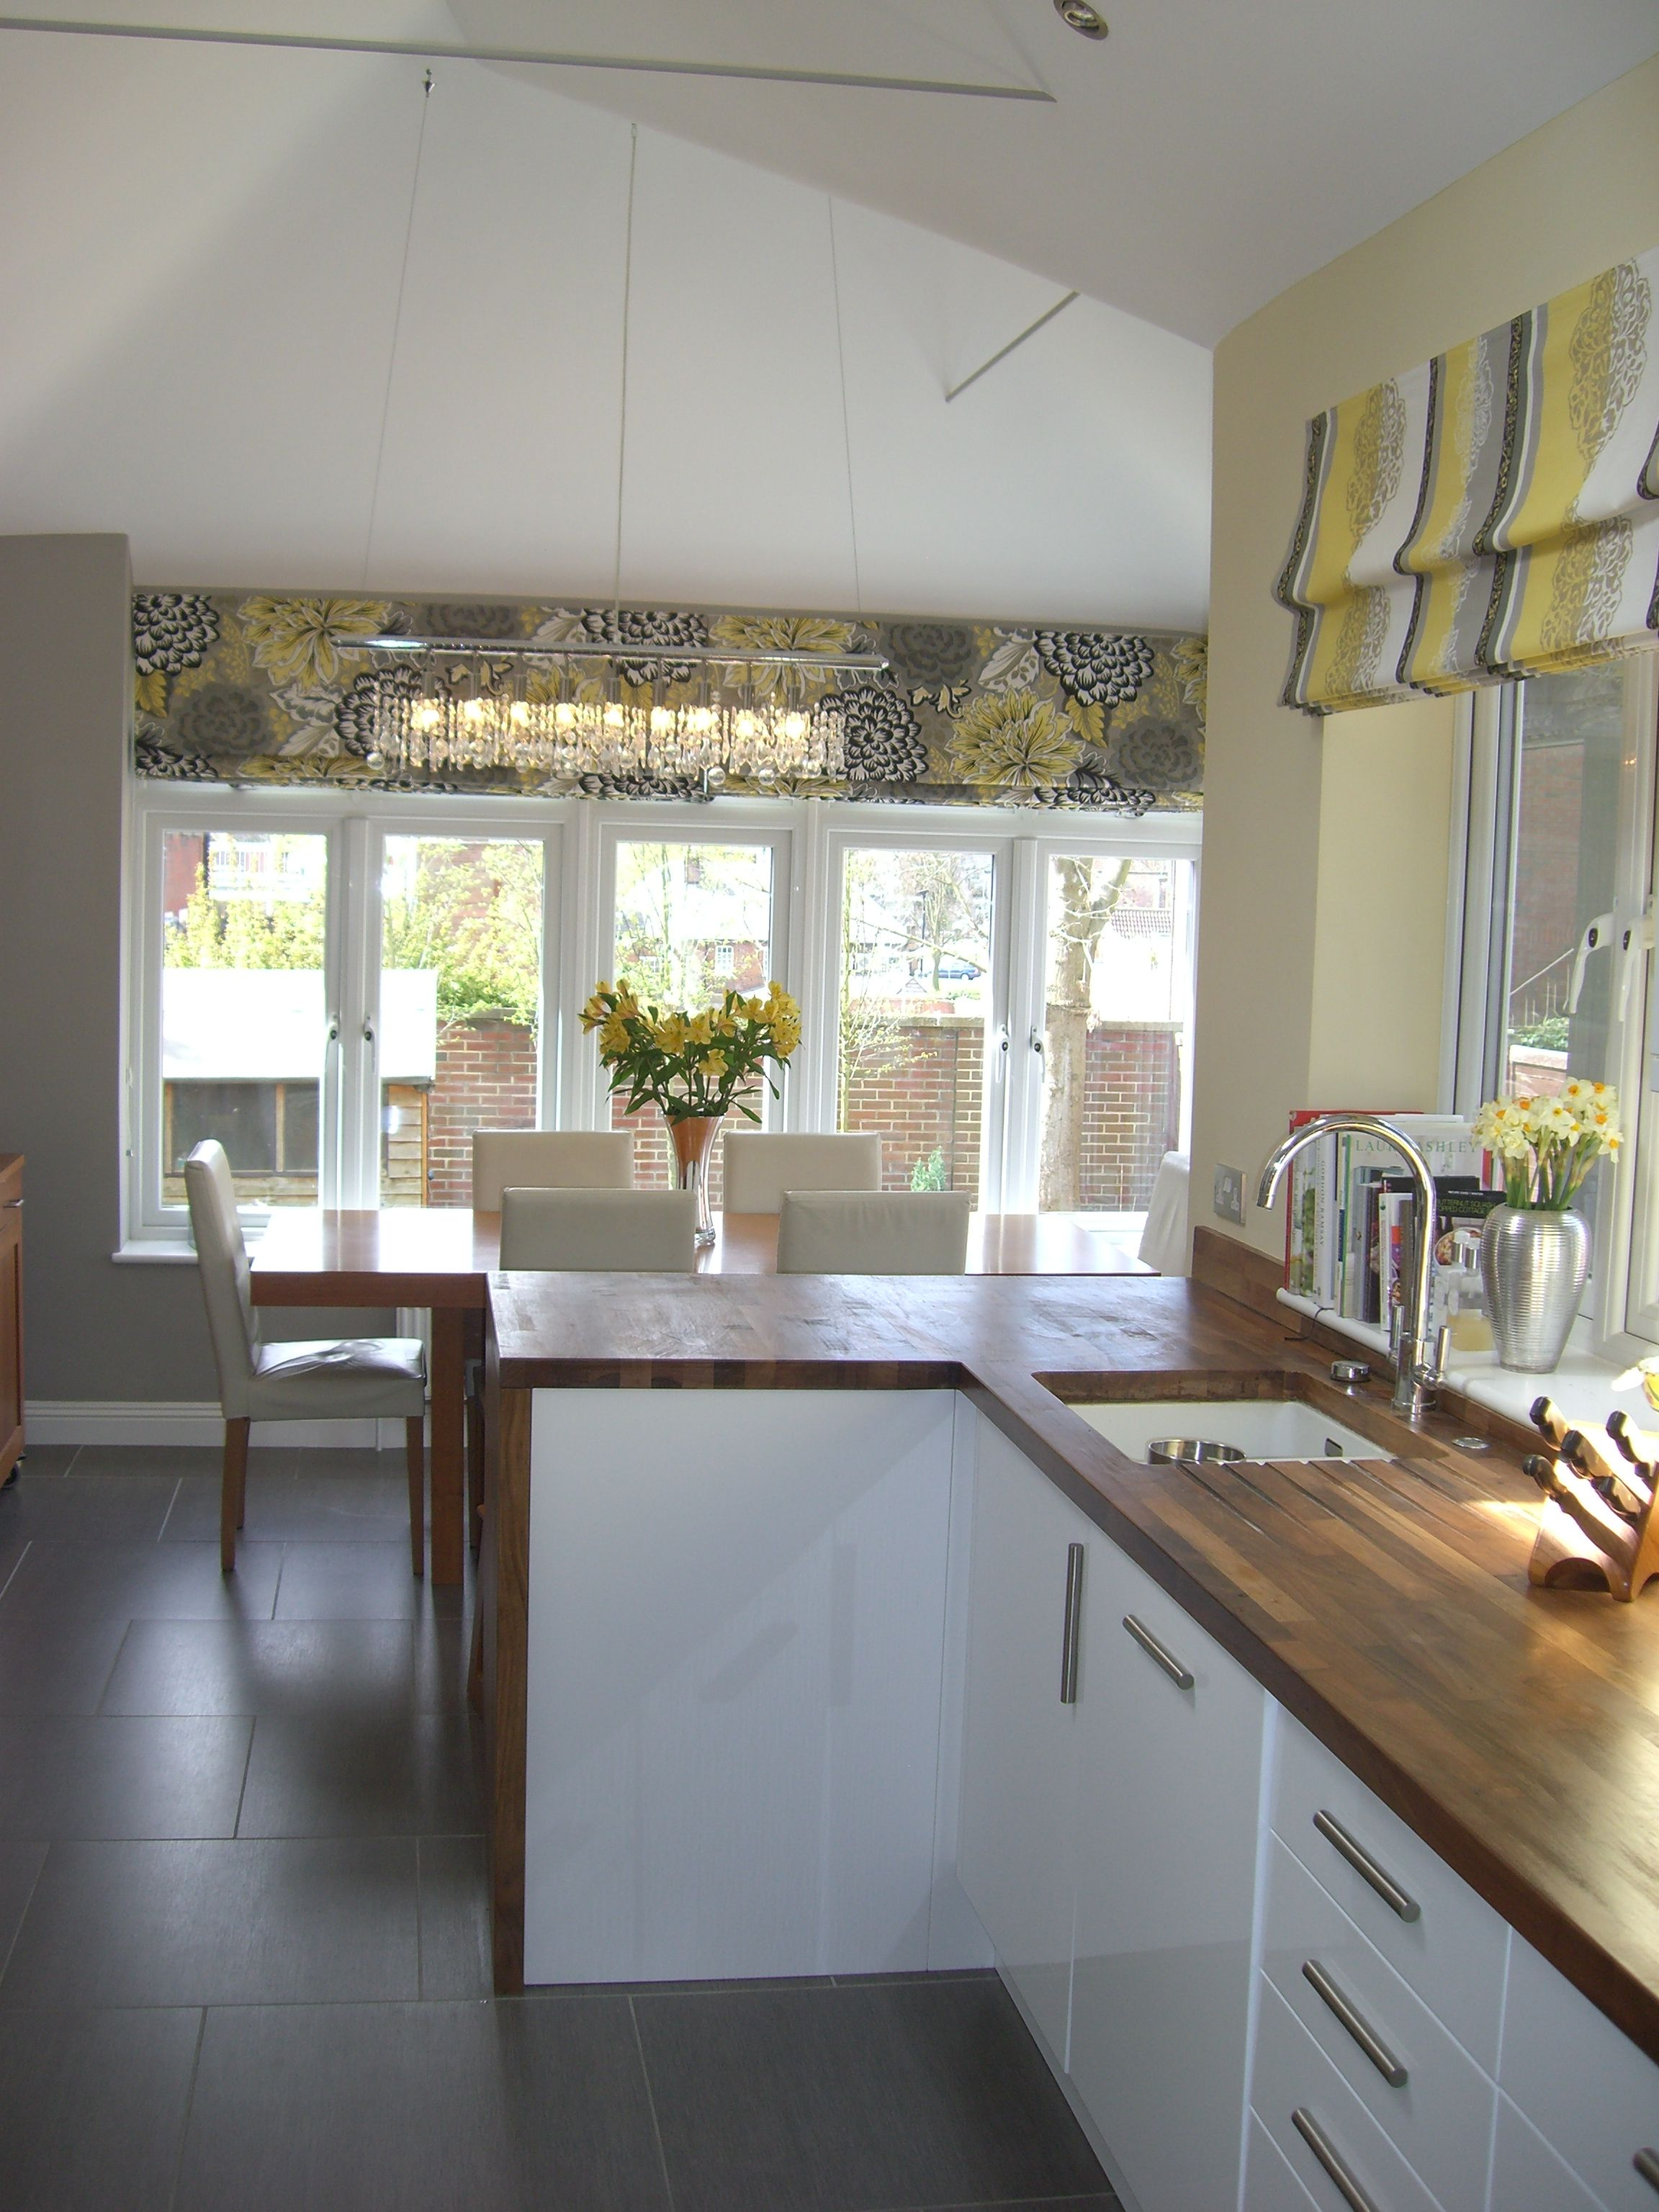 gorgeous also warm blinds grey more the pin love modern tiles are yellow and scheme floor